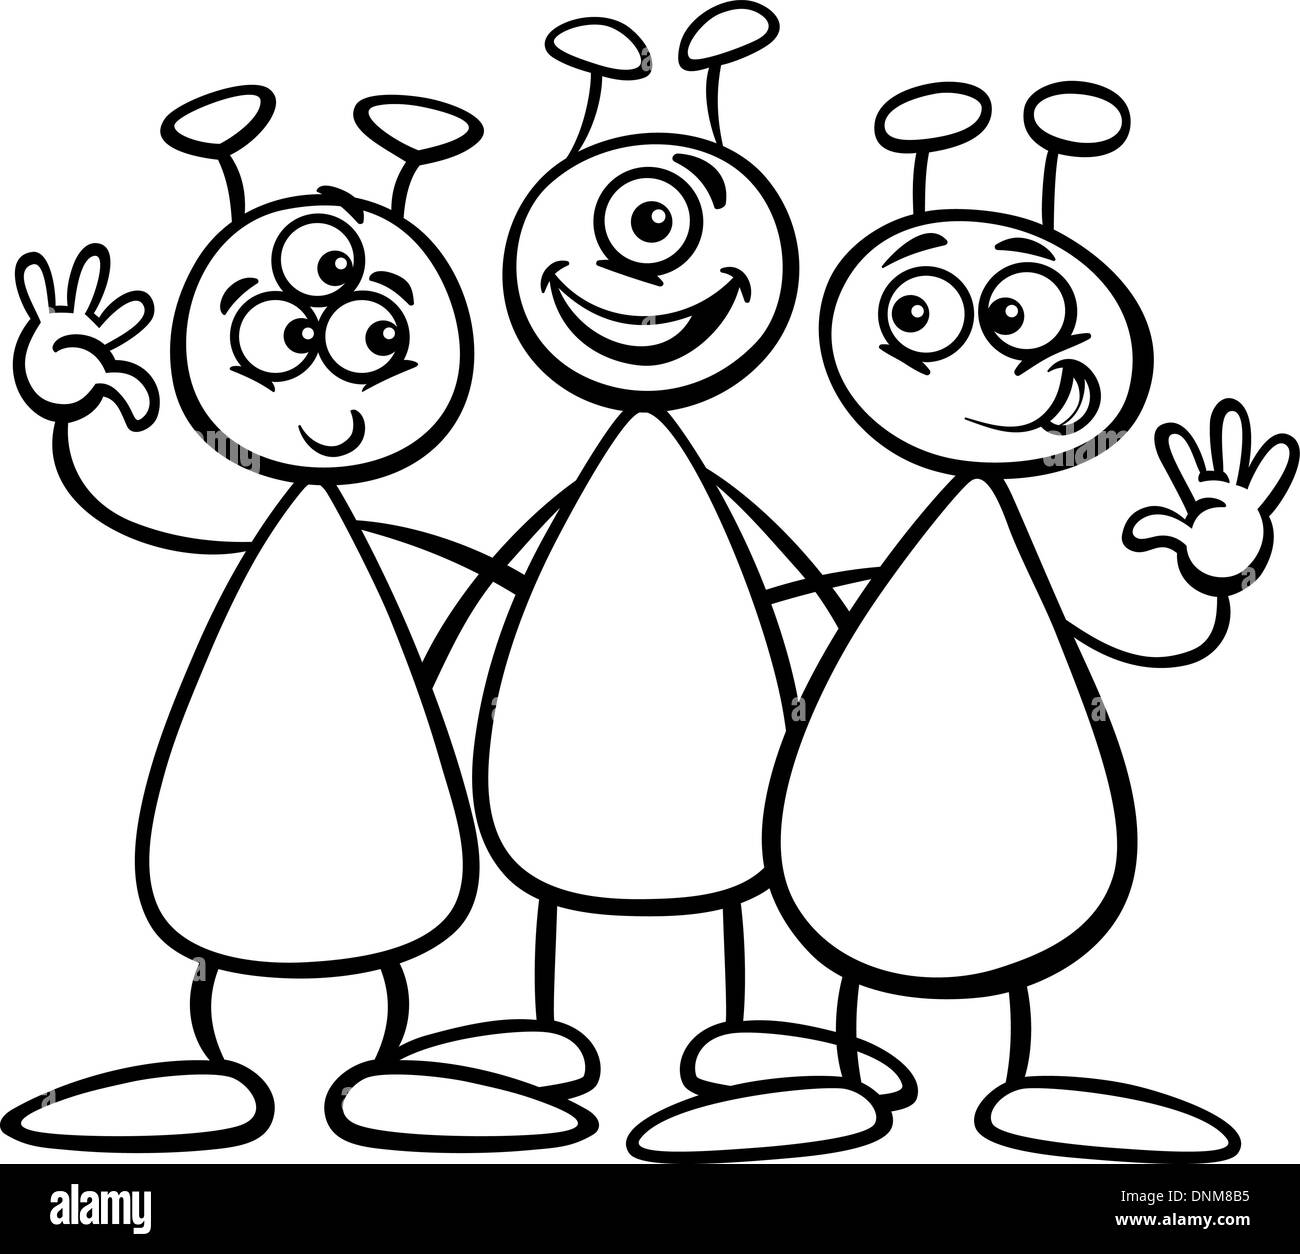 black and white cartoon illustration of three funny aliens